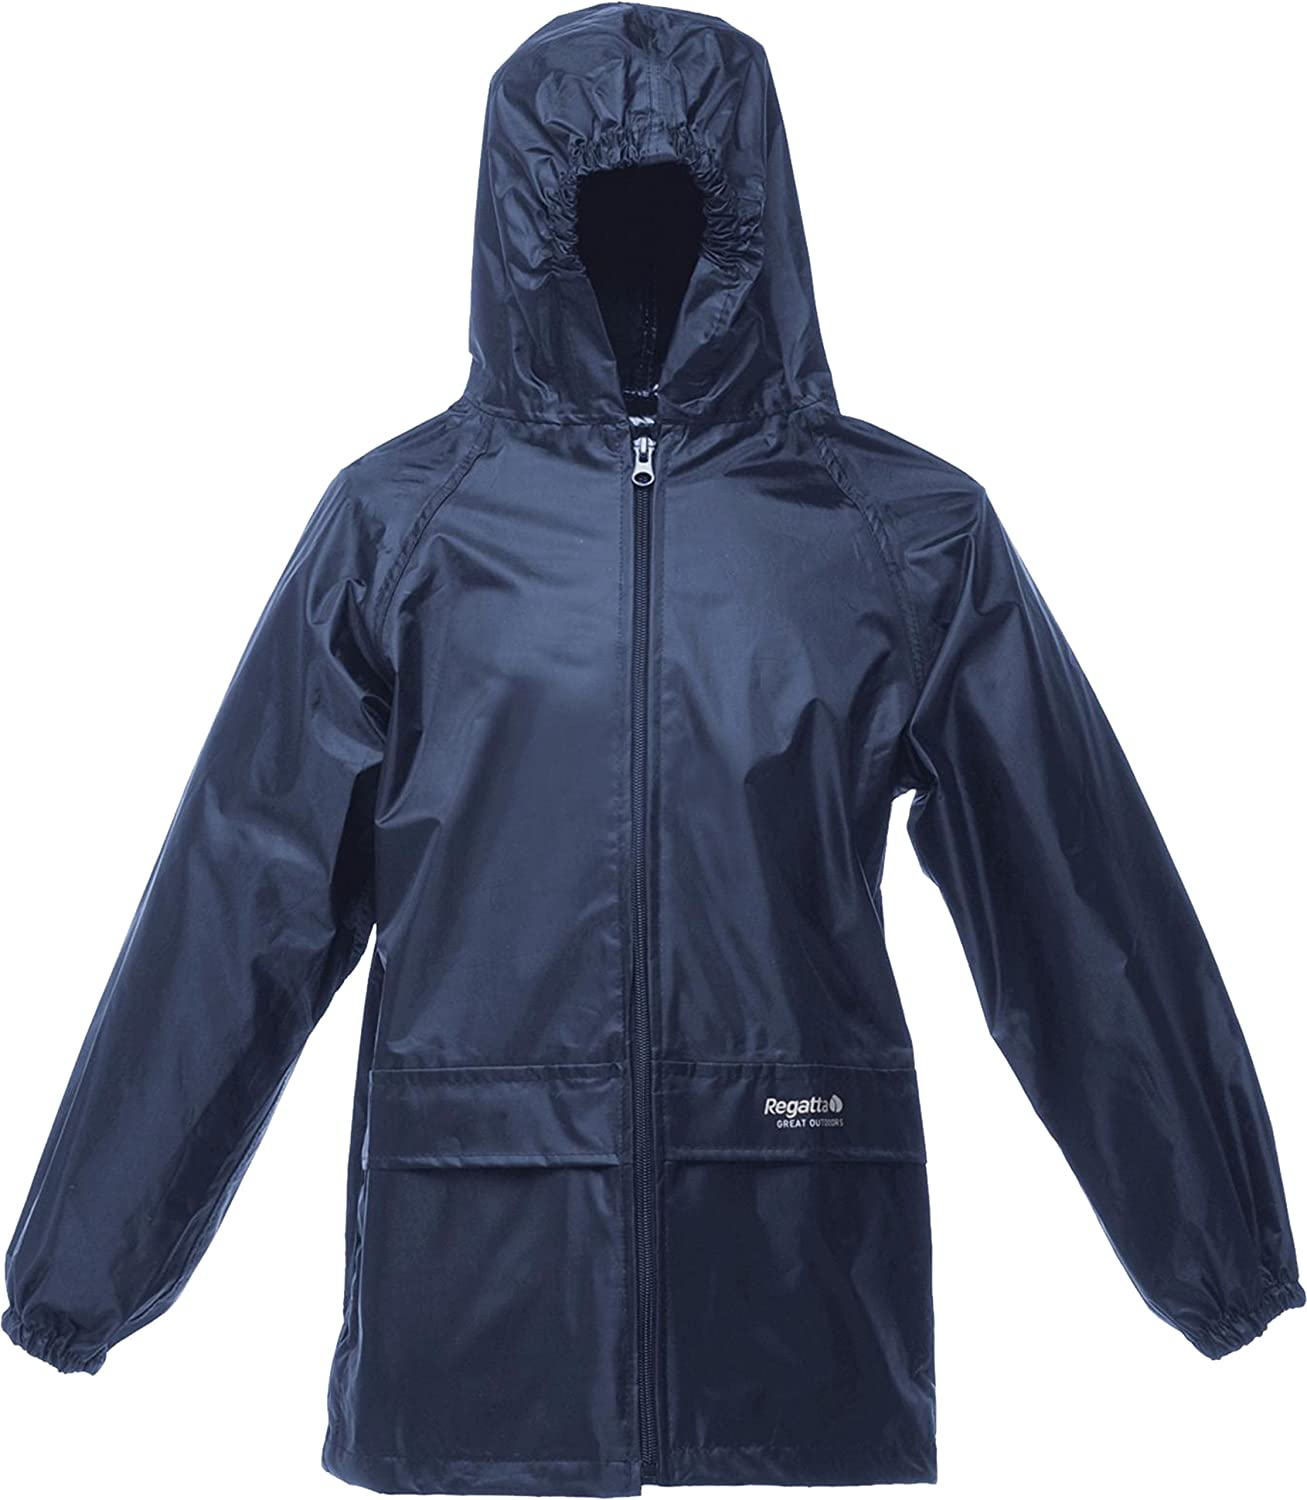 Regatta Kids' Stormbreak Jacket: Amazon.co.uk: Clothing